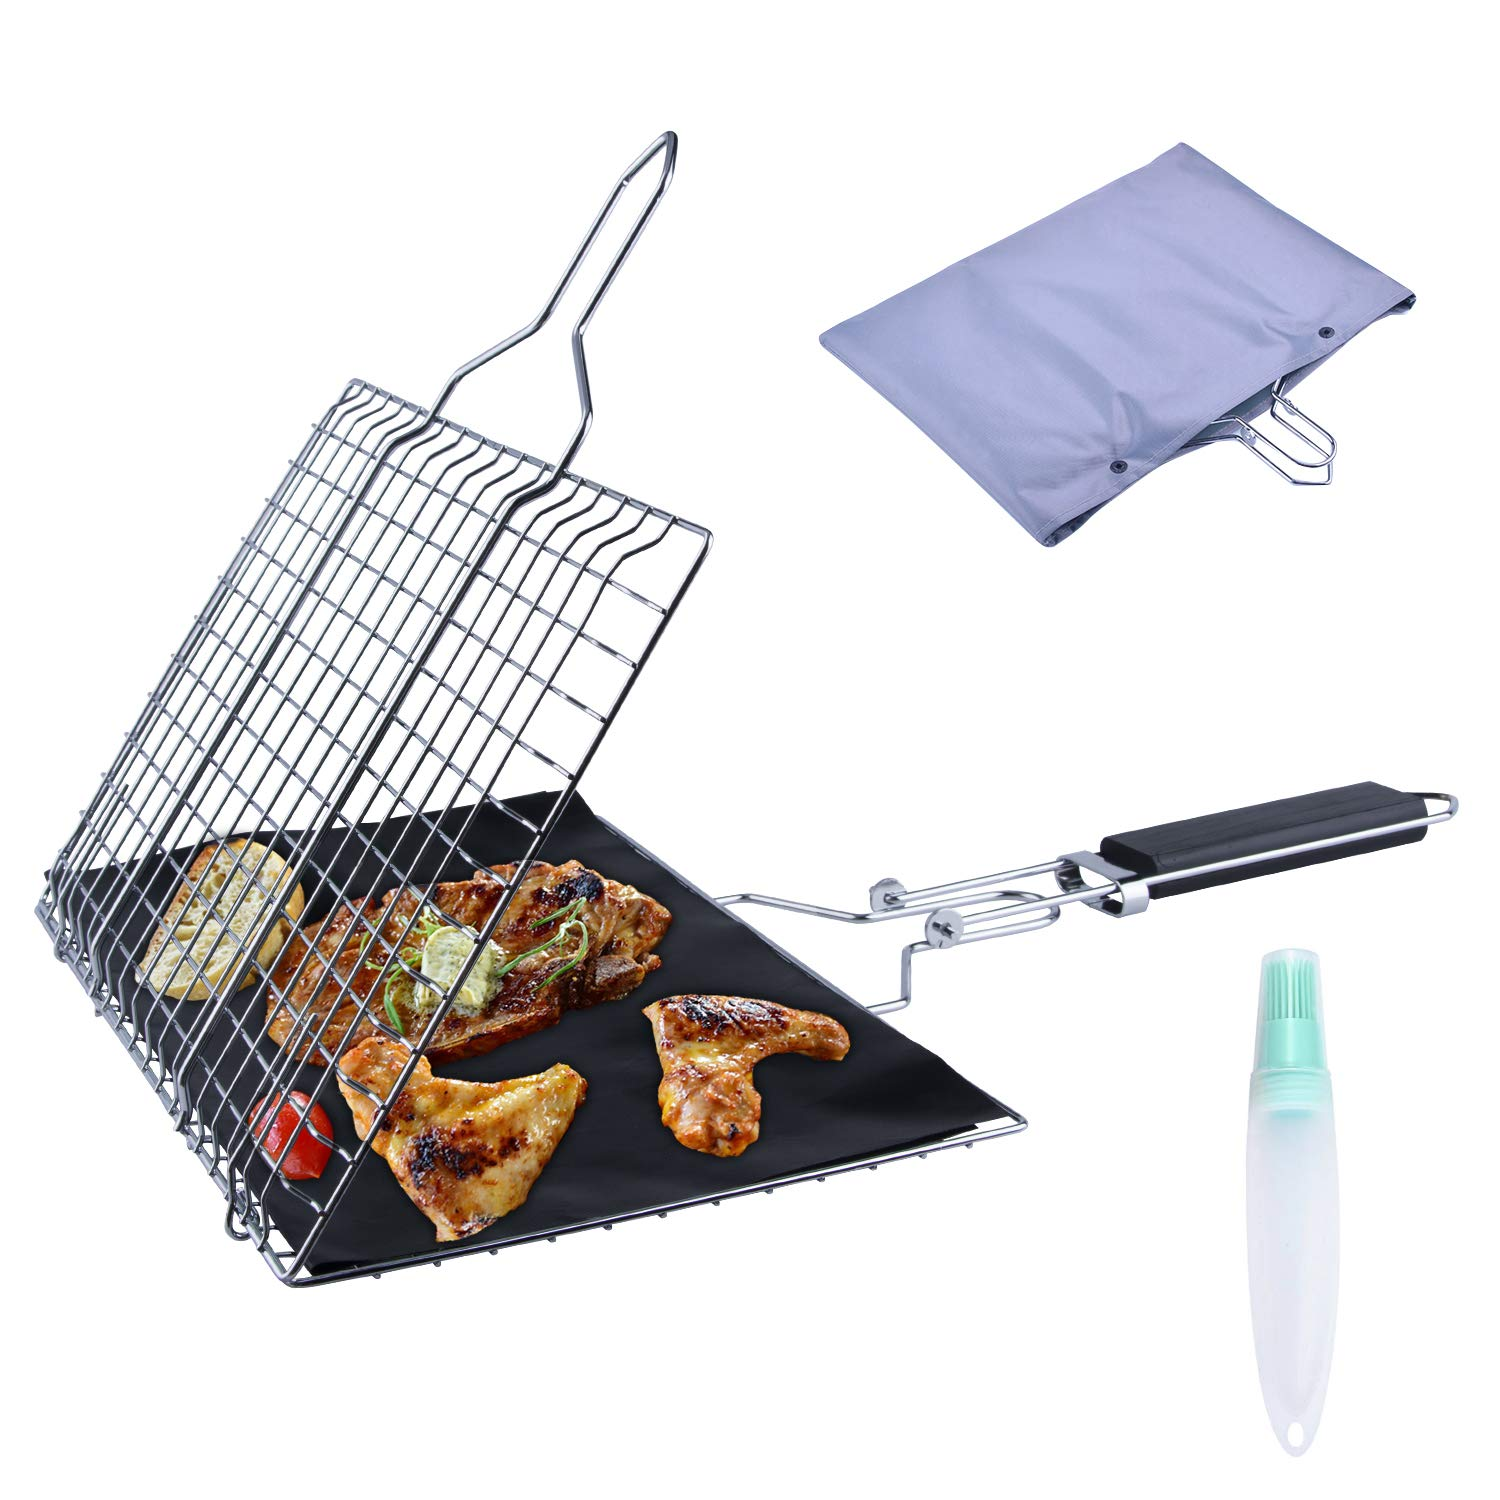 ACMETOP BBQ Grill Basket, Stainless Steel Barbecue Grilling Basket for Fish, Vegetable, Steak - Bonus an Grill Mat, Sauce Bottle Brush and Carrying Pouch